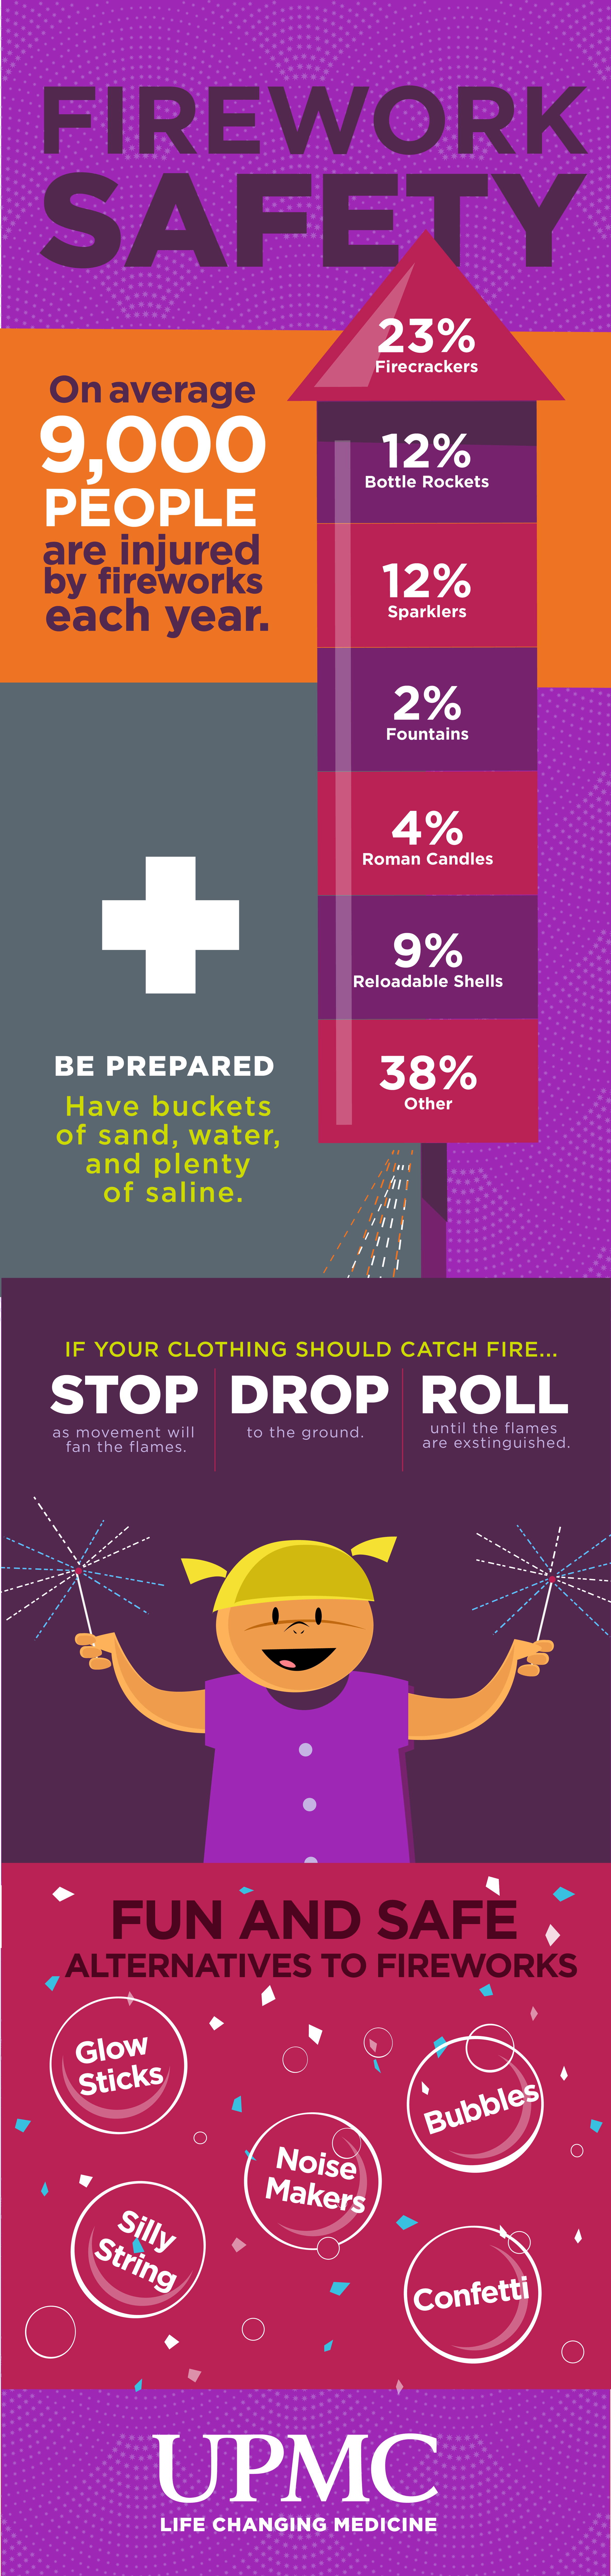 Learn more about fireworks safety